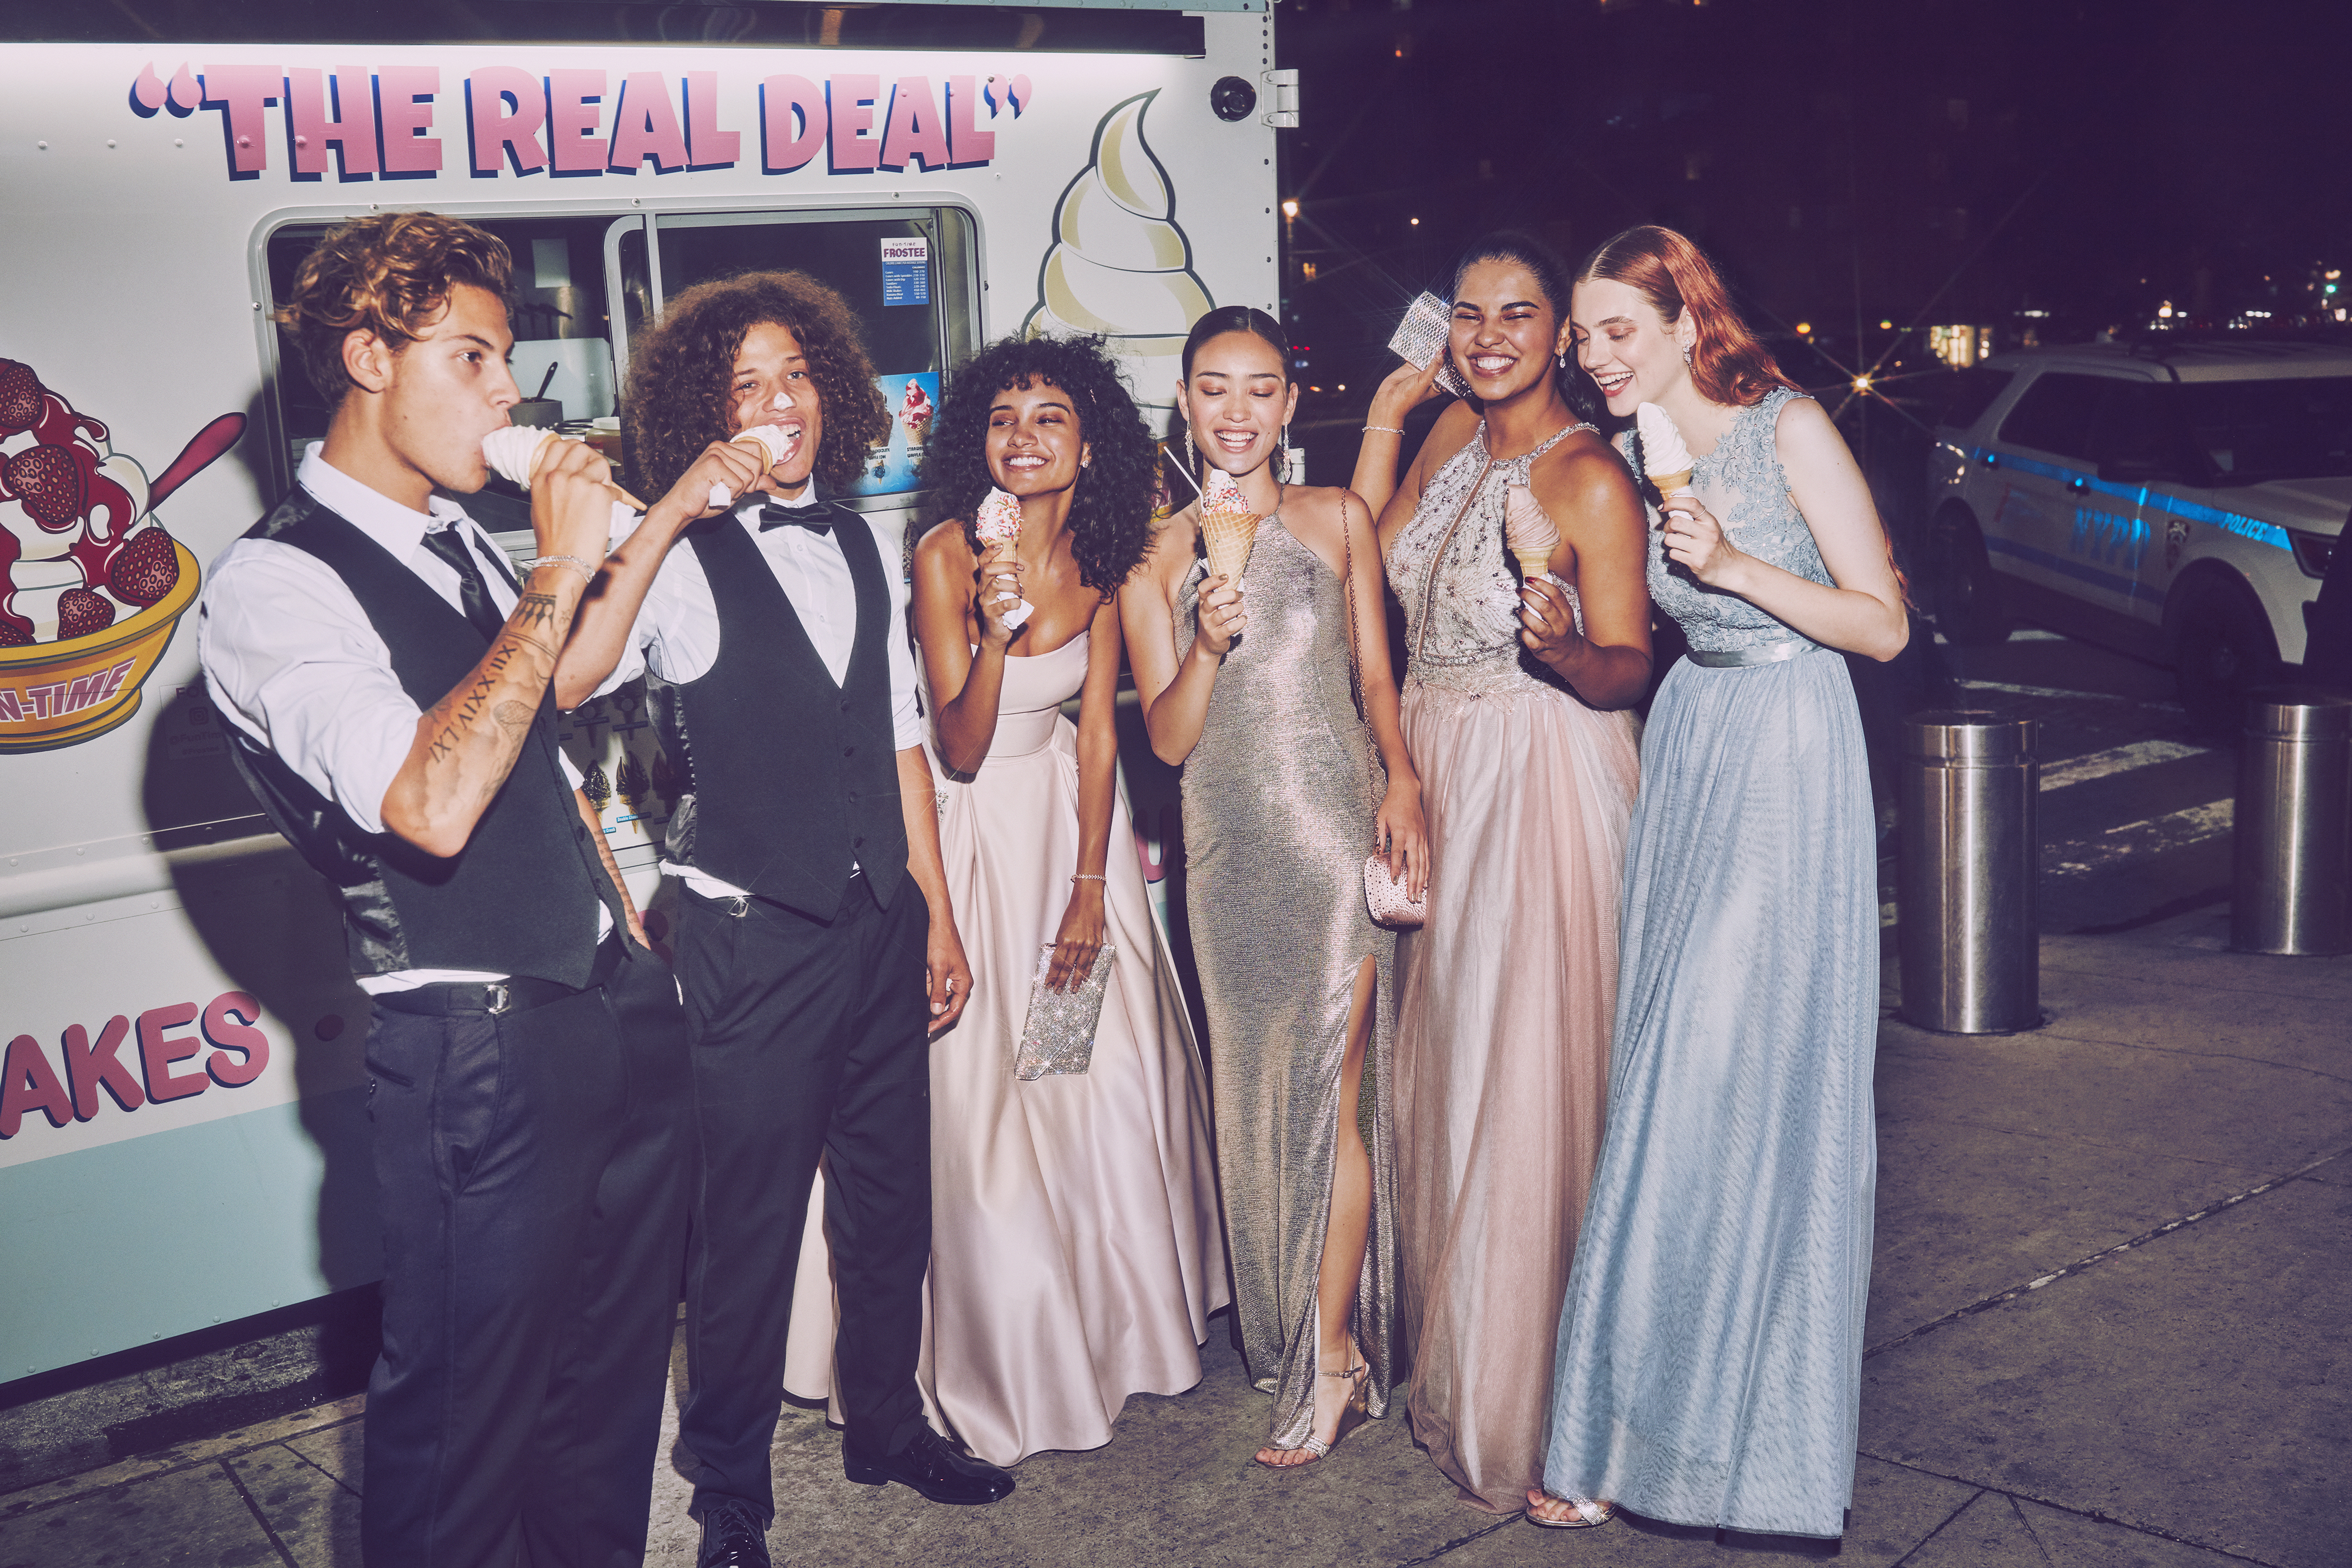 High School girls and boys eating ice cream in suits and long prom dresses